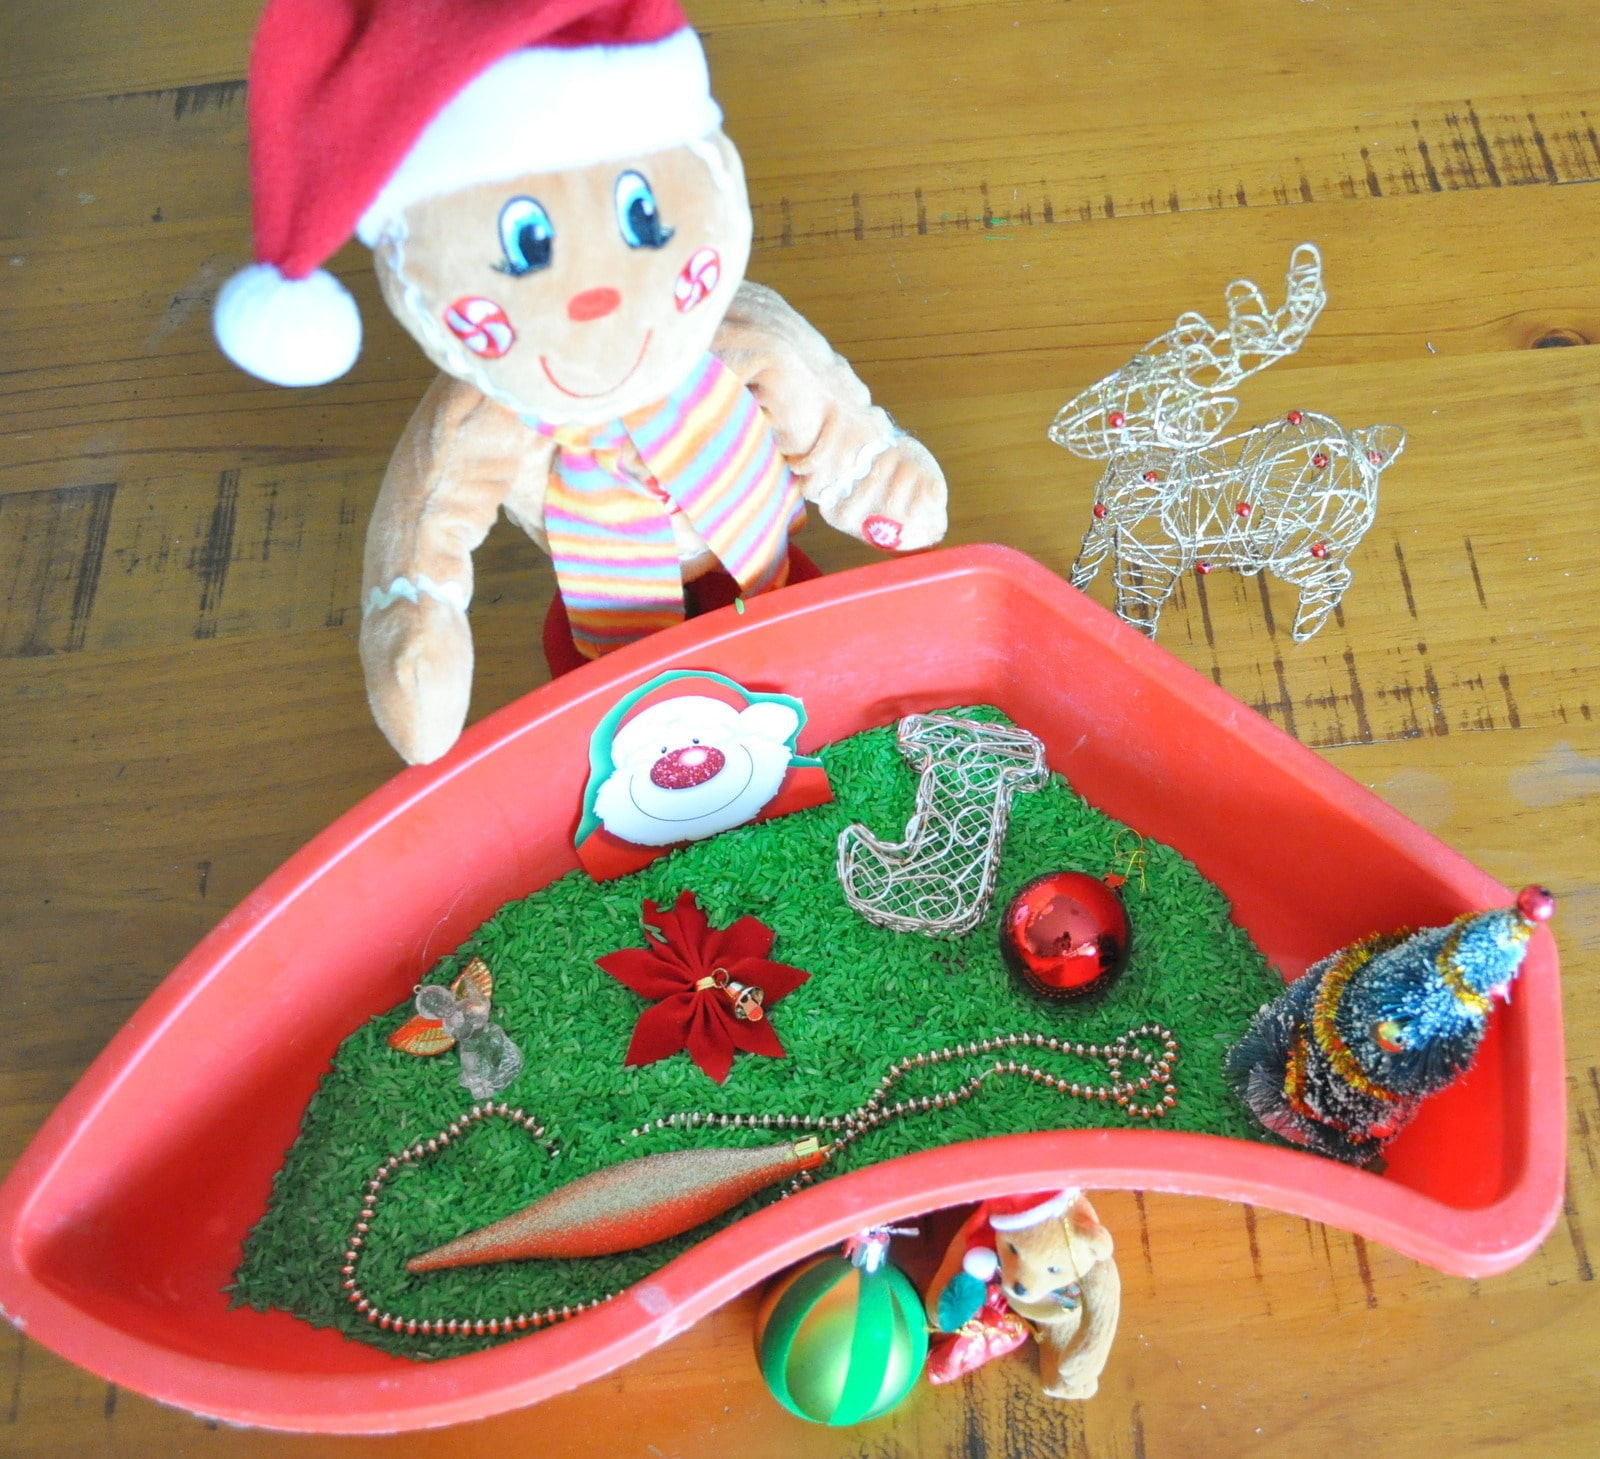 Sensory Christmas Activity for Kids | Brisbane Kids